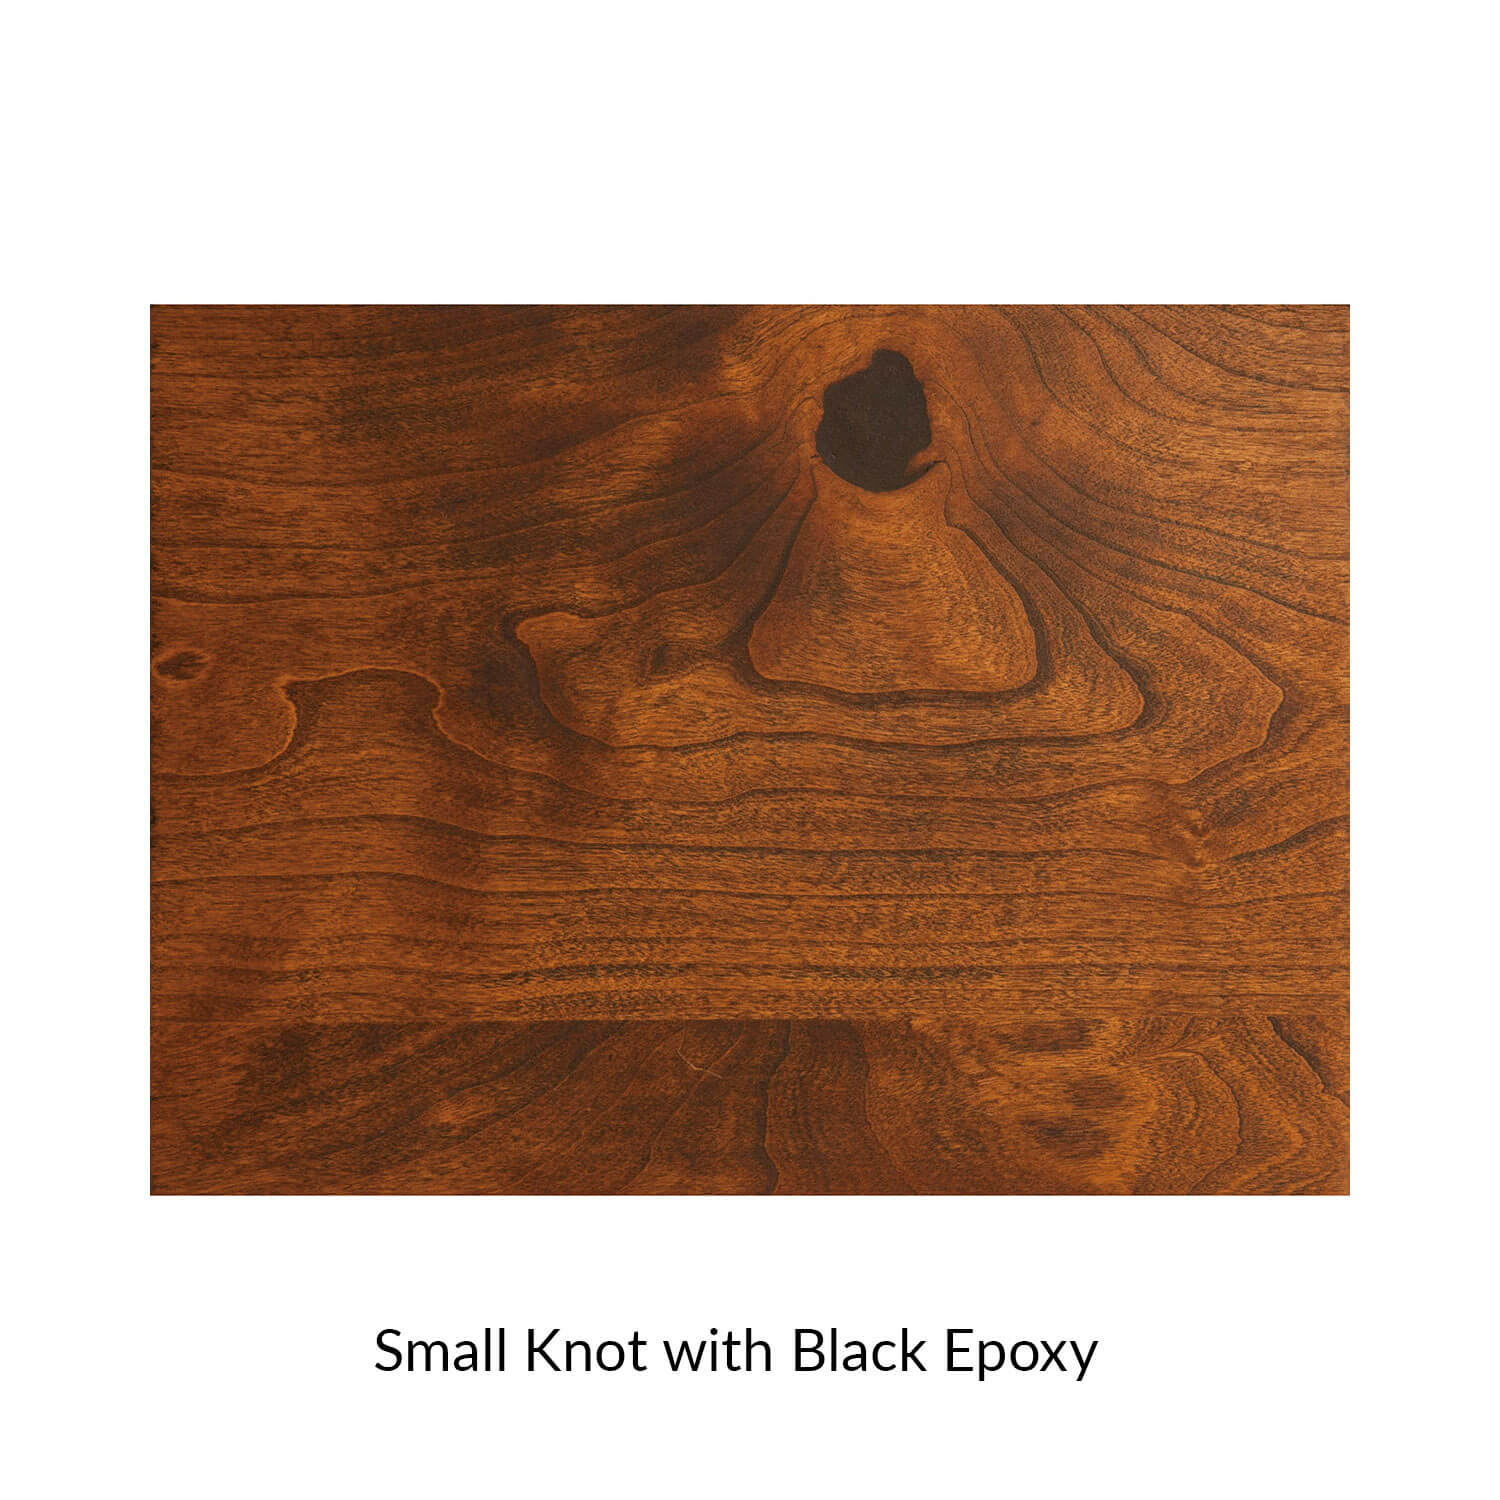 2.-small-knot-with-black-epoxy.jpg